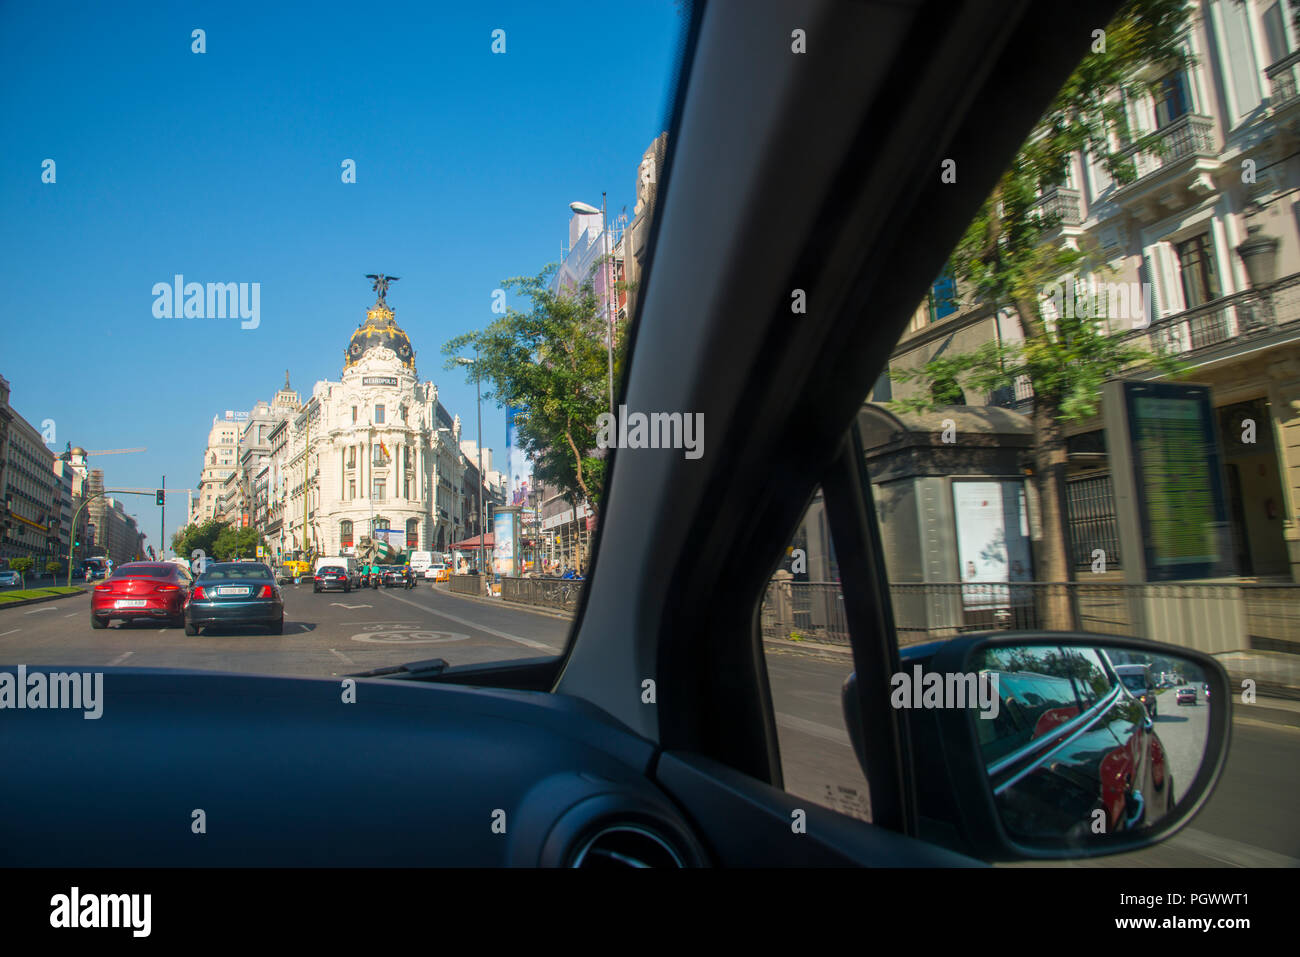 Alcala street viewed from inside a car. Madrid, Spain. Stock Photo